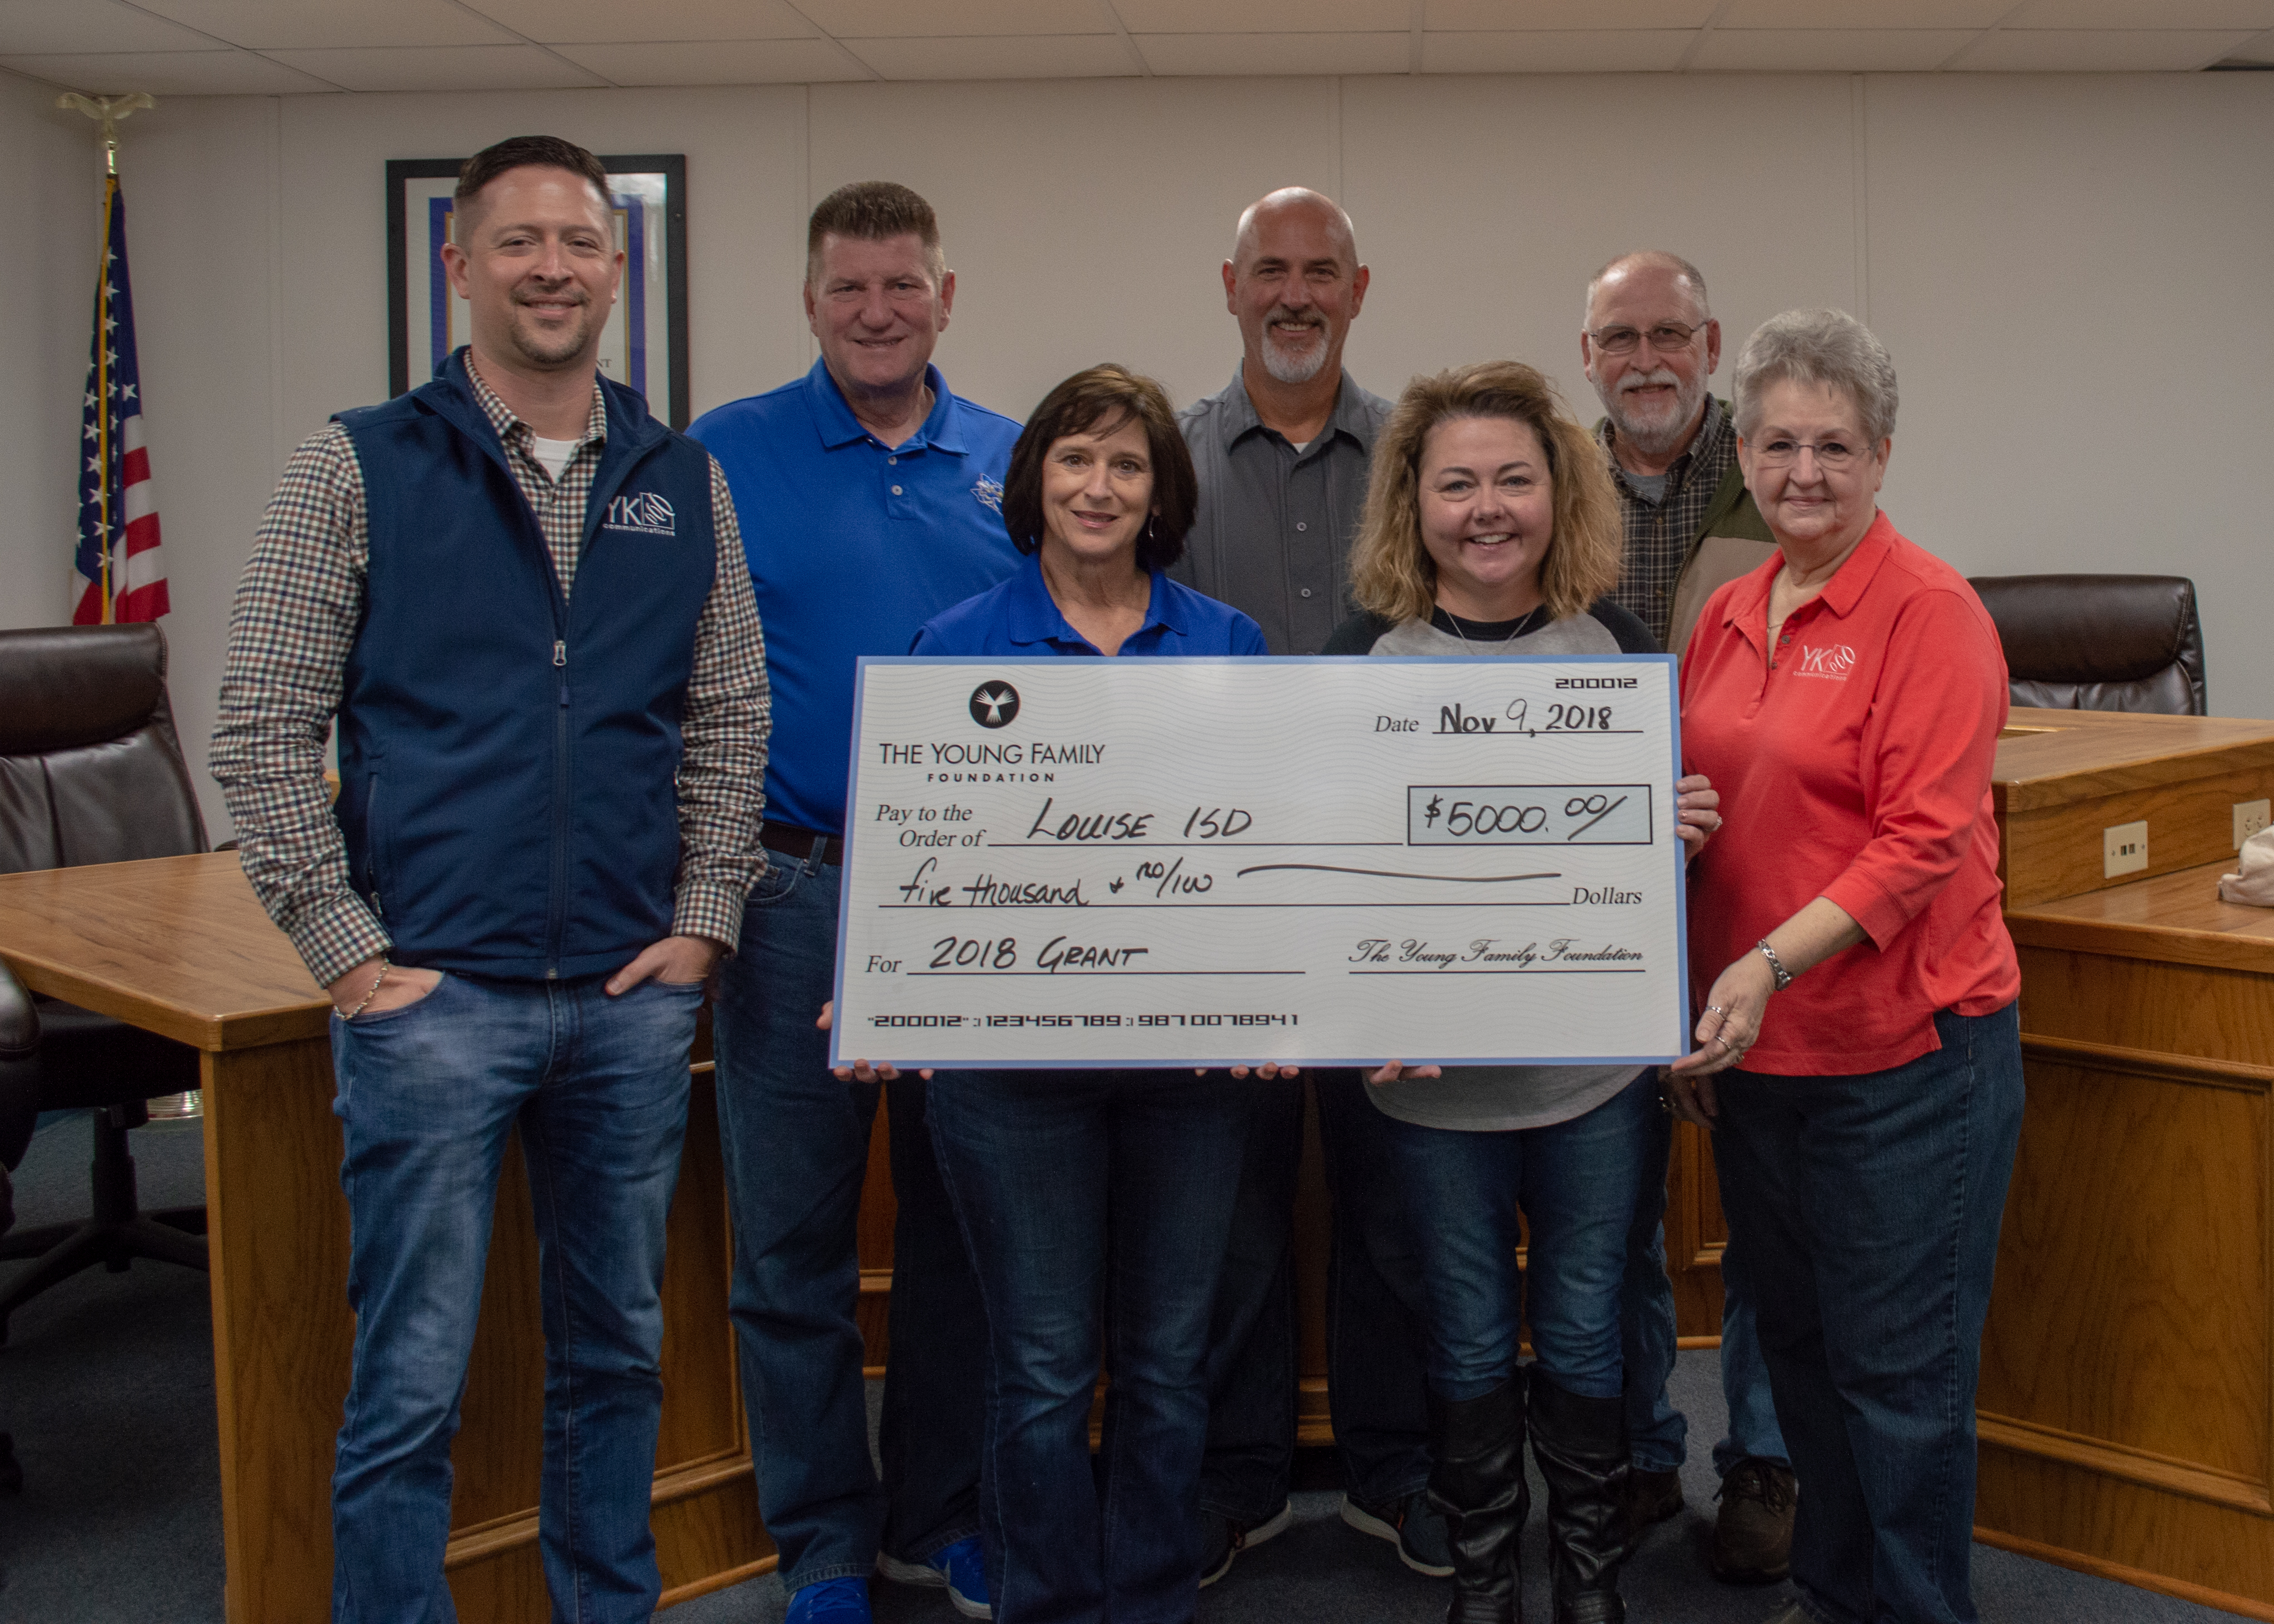 YK Communications gives back to community in Louise, TX